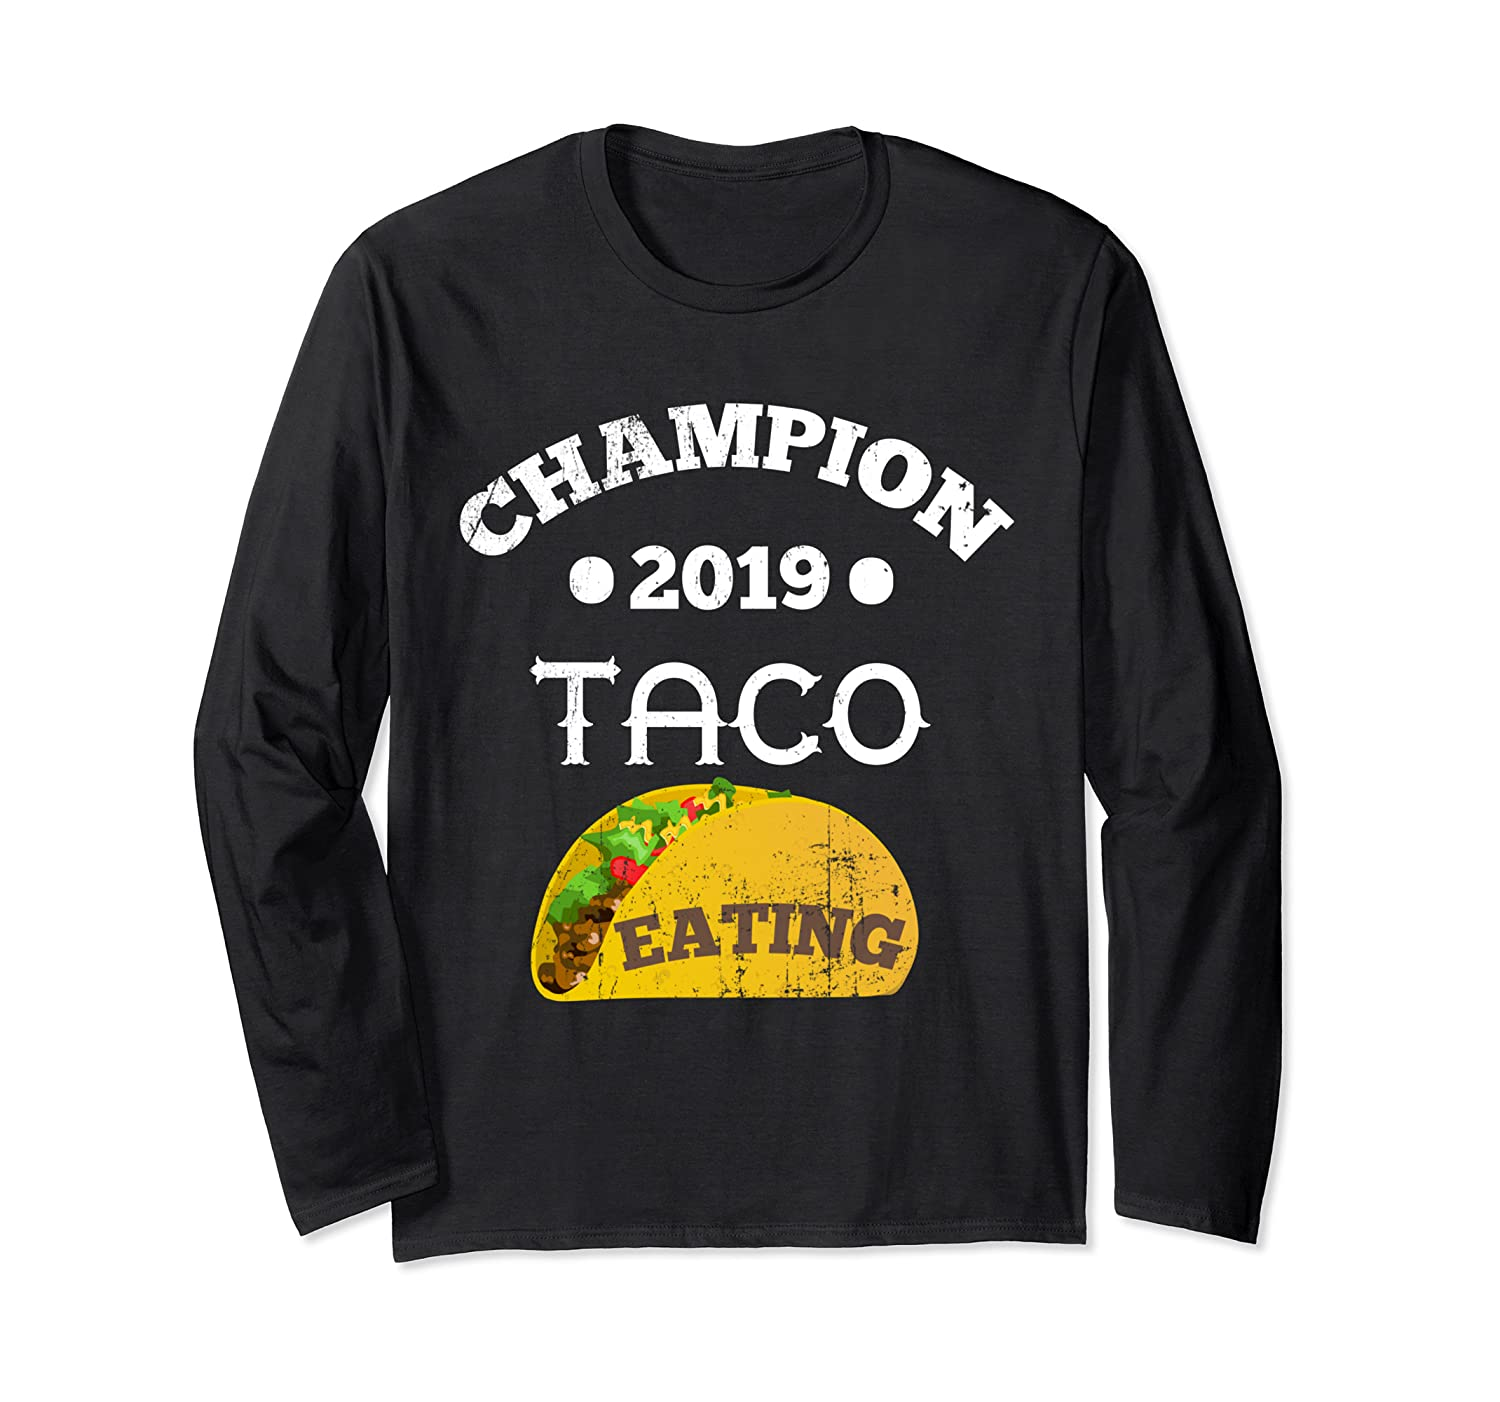 Champion 2019 Taco Eating Funny Mexican Tacos Lovers Gift Shirts